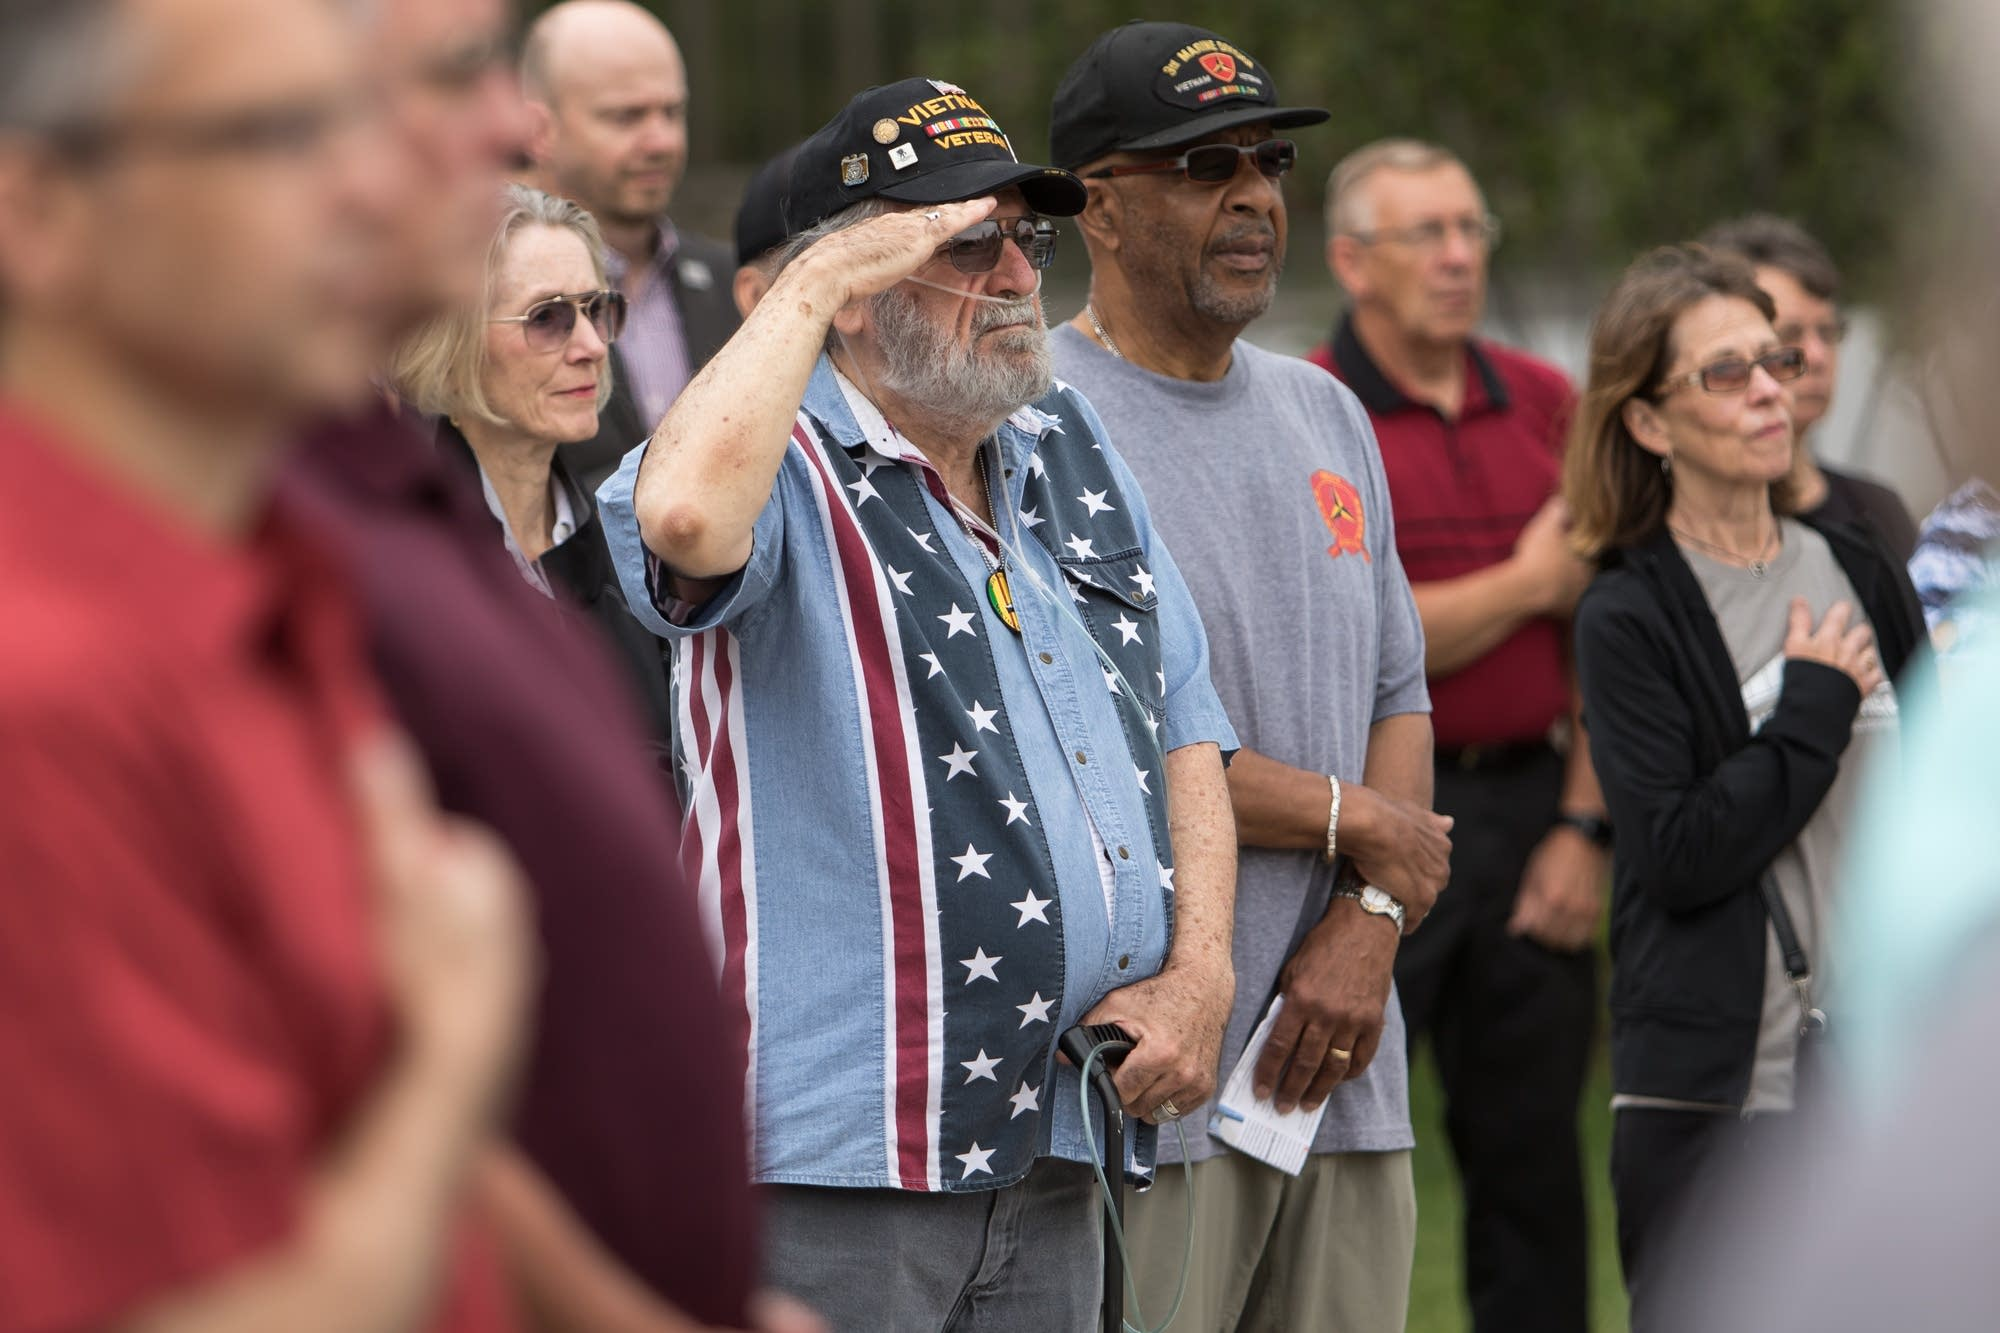 Jim Lee, who served in the Navy during the Vietnam War, salutes the flag.